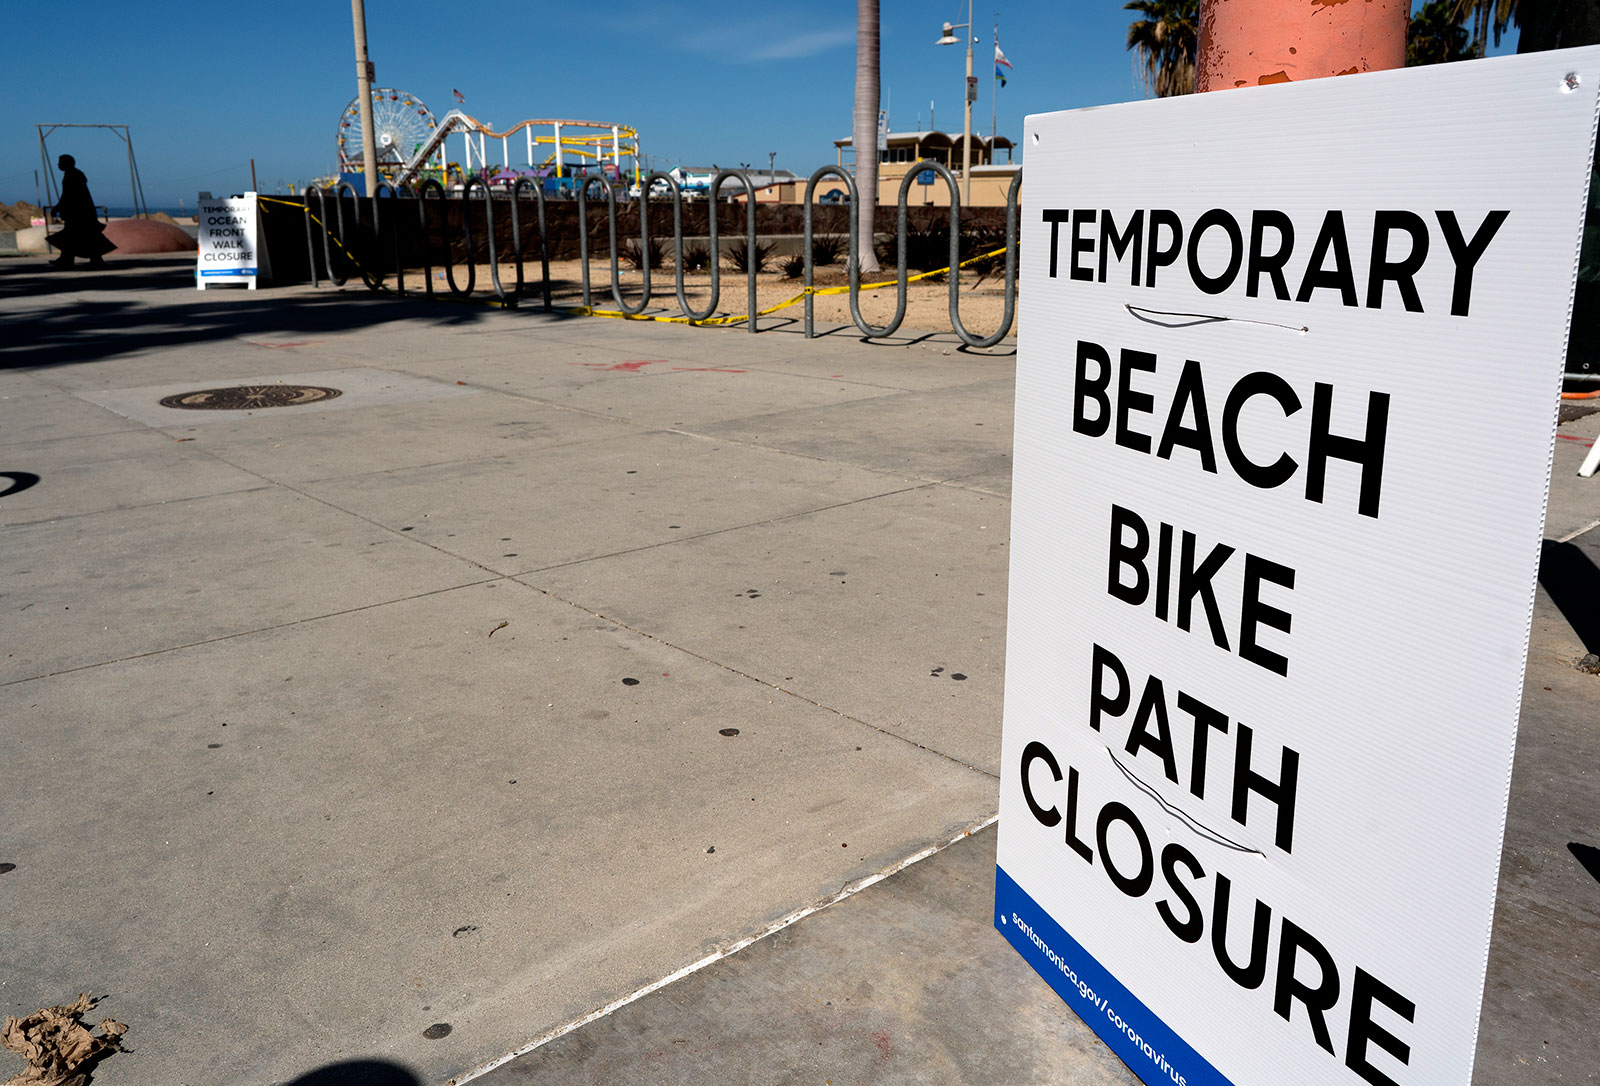 In an attempt to keep people social distancing due to COVID-19, a temporary closed sign is posted at the beach near the Santa Monica Pier in Santa Monica, California on April 23.